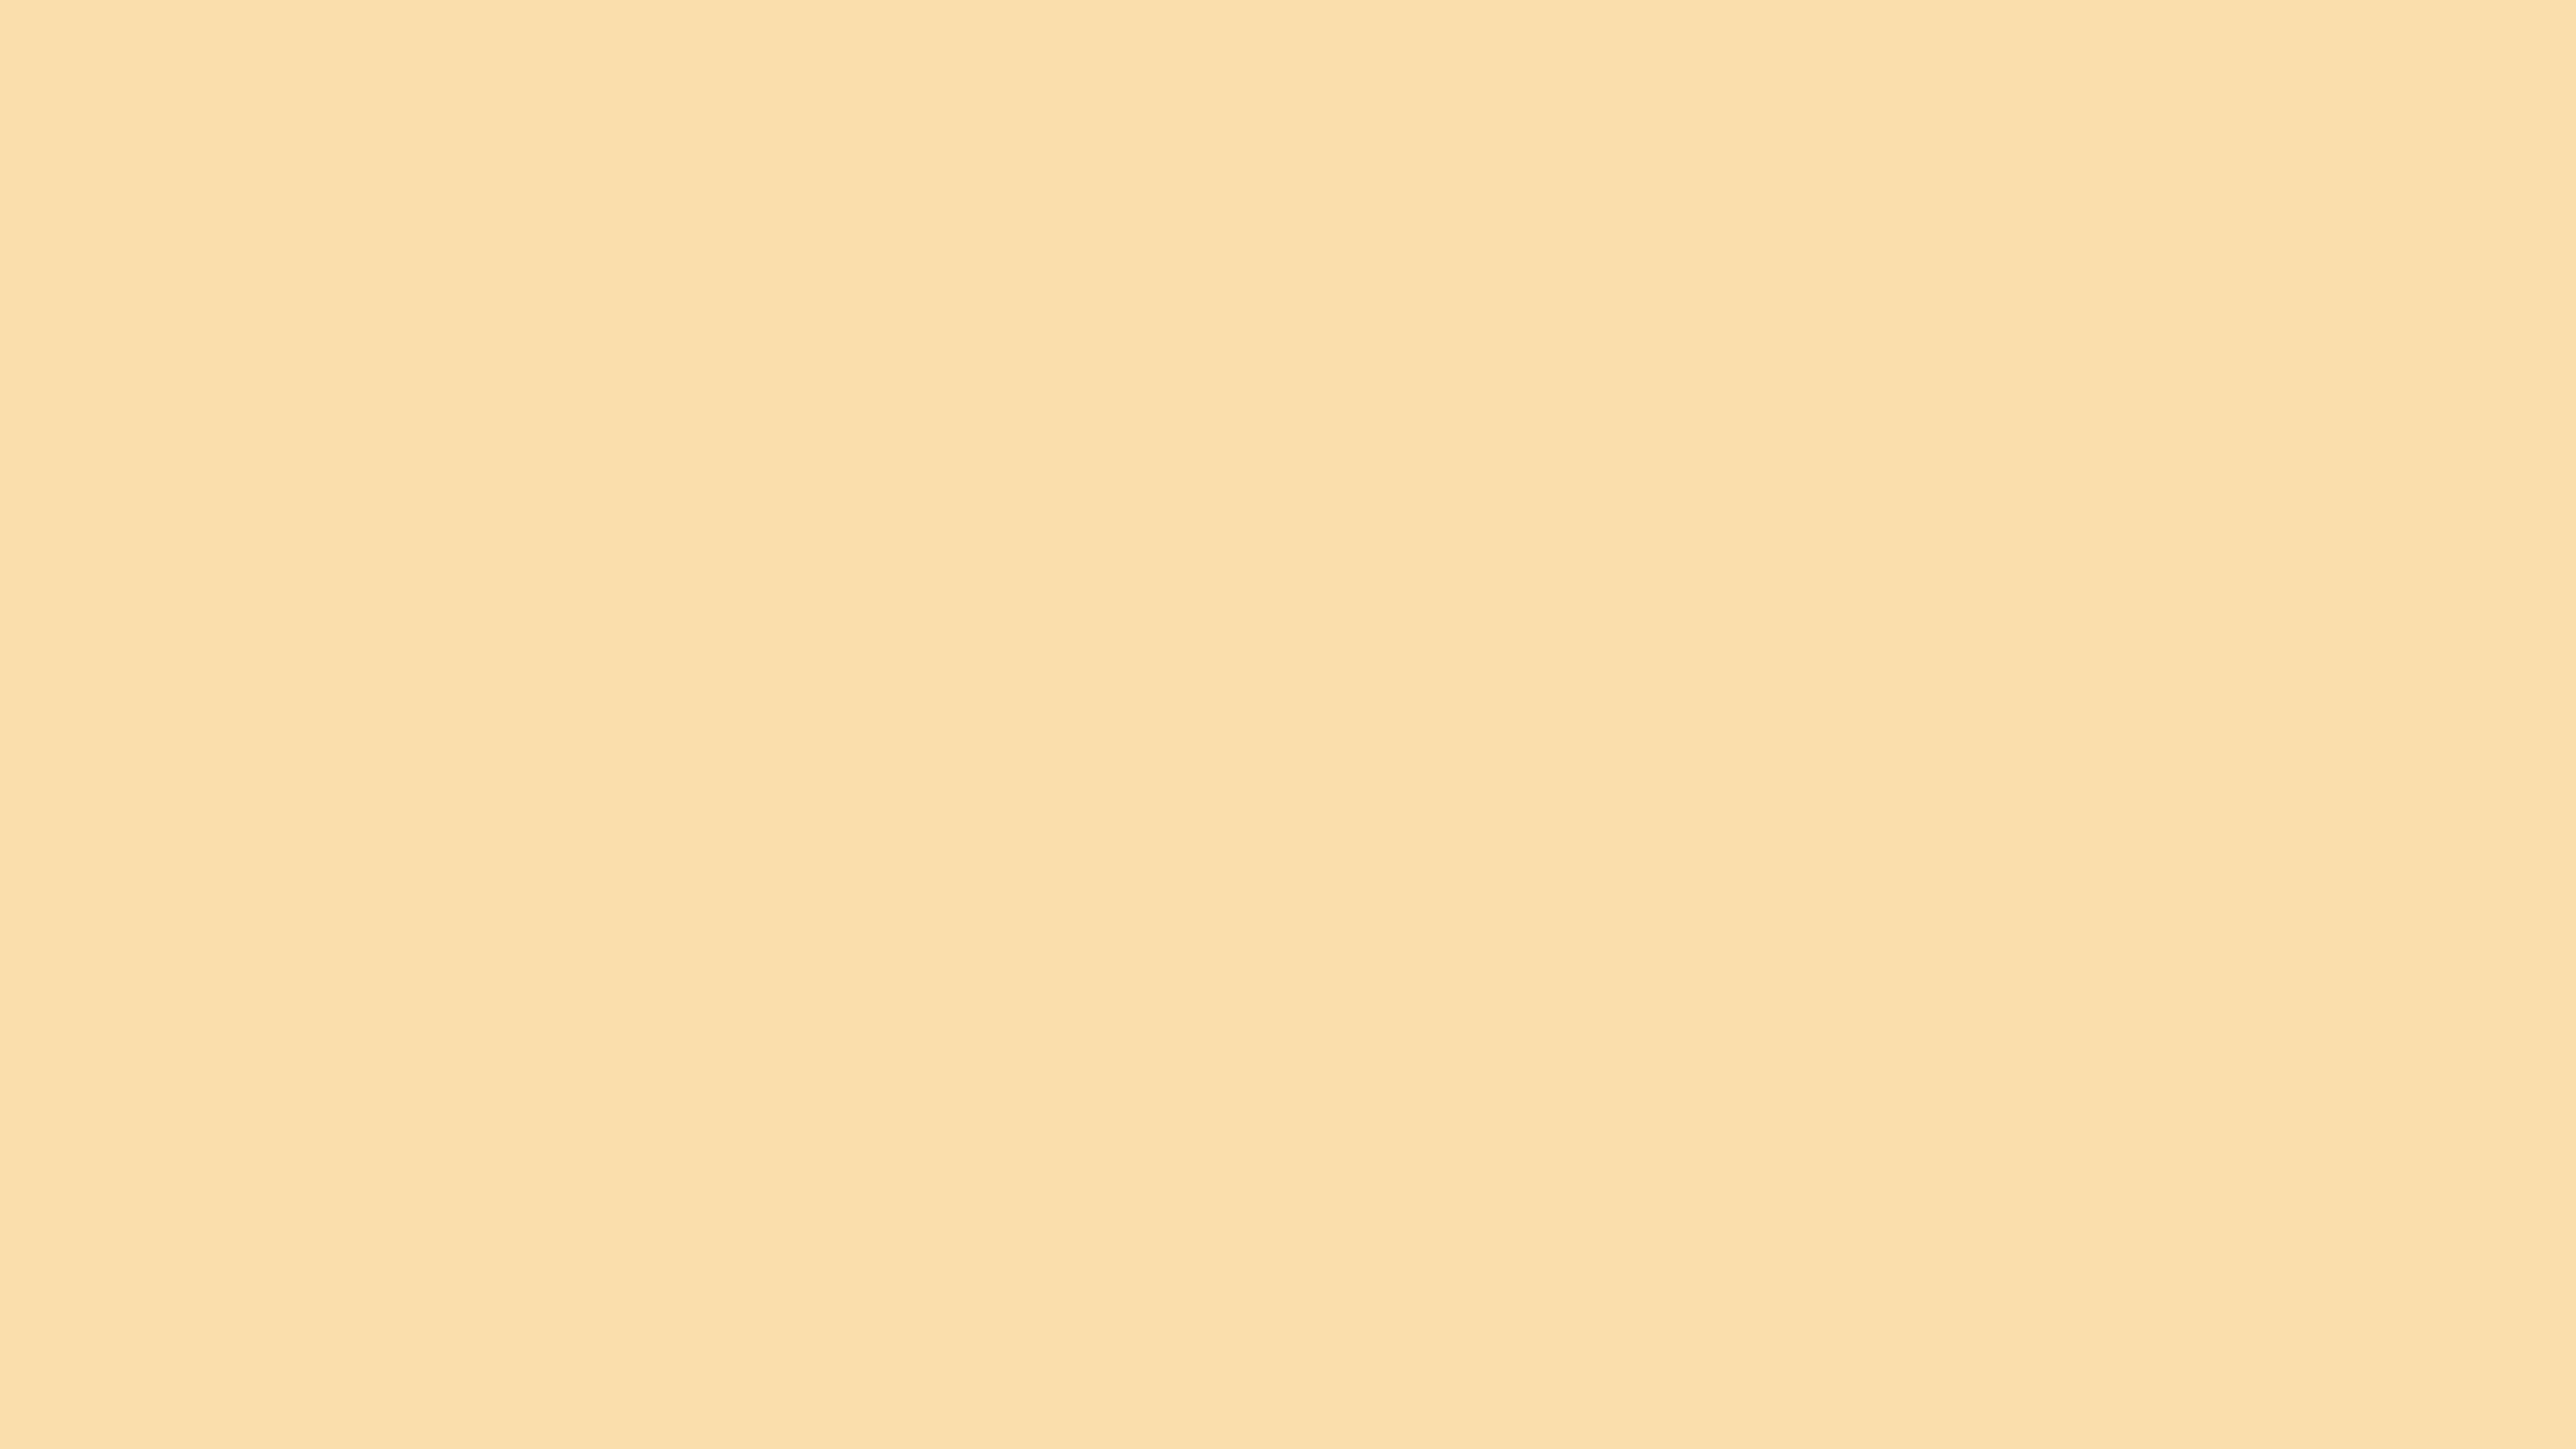 4096x2304 Peach-yellow Solid Color Background